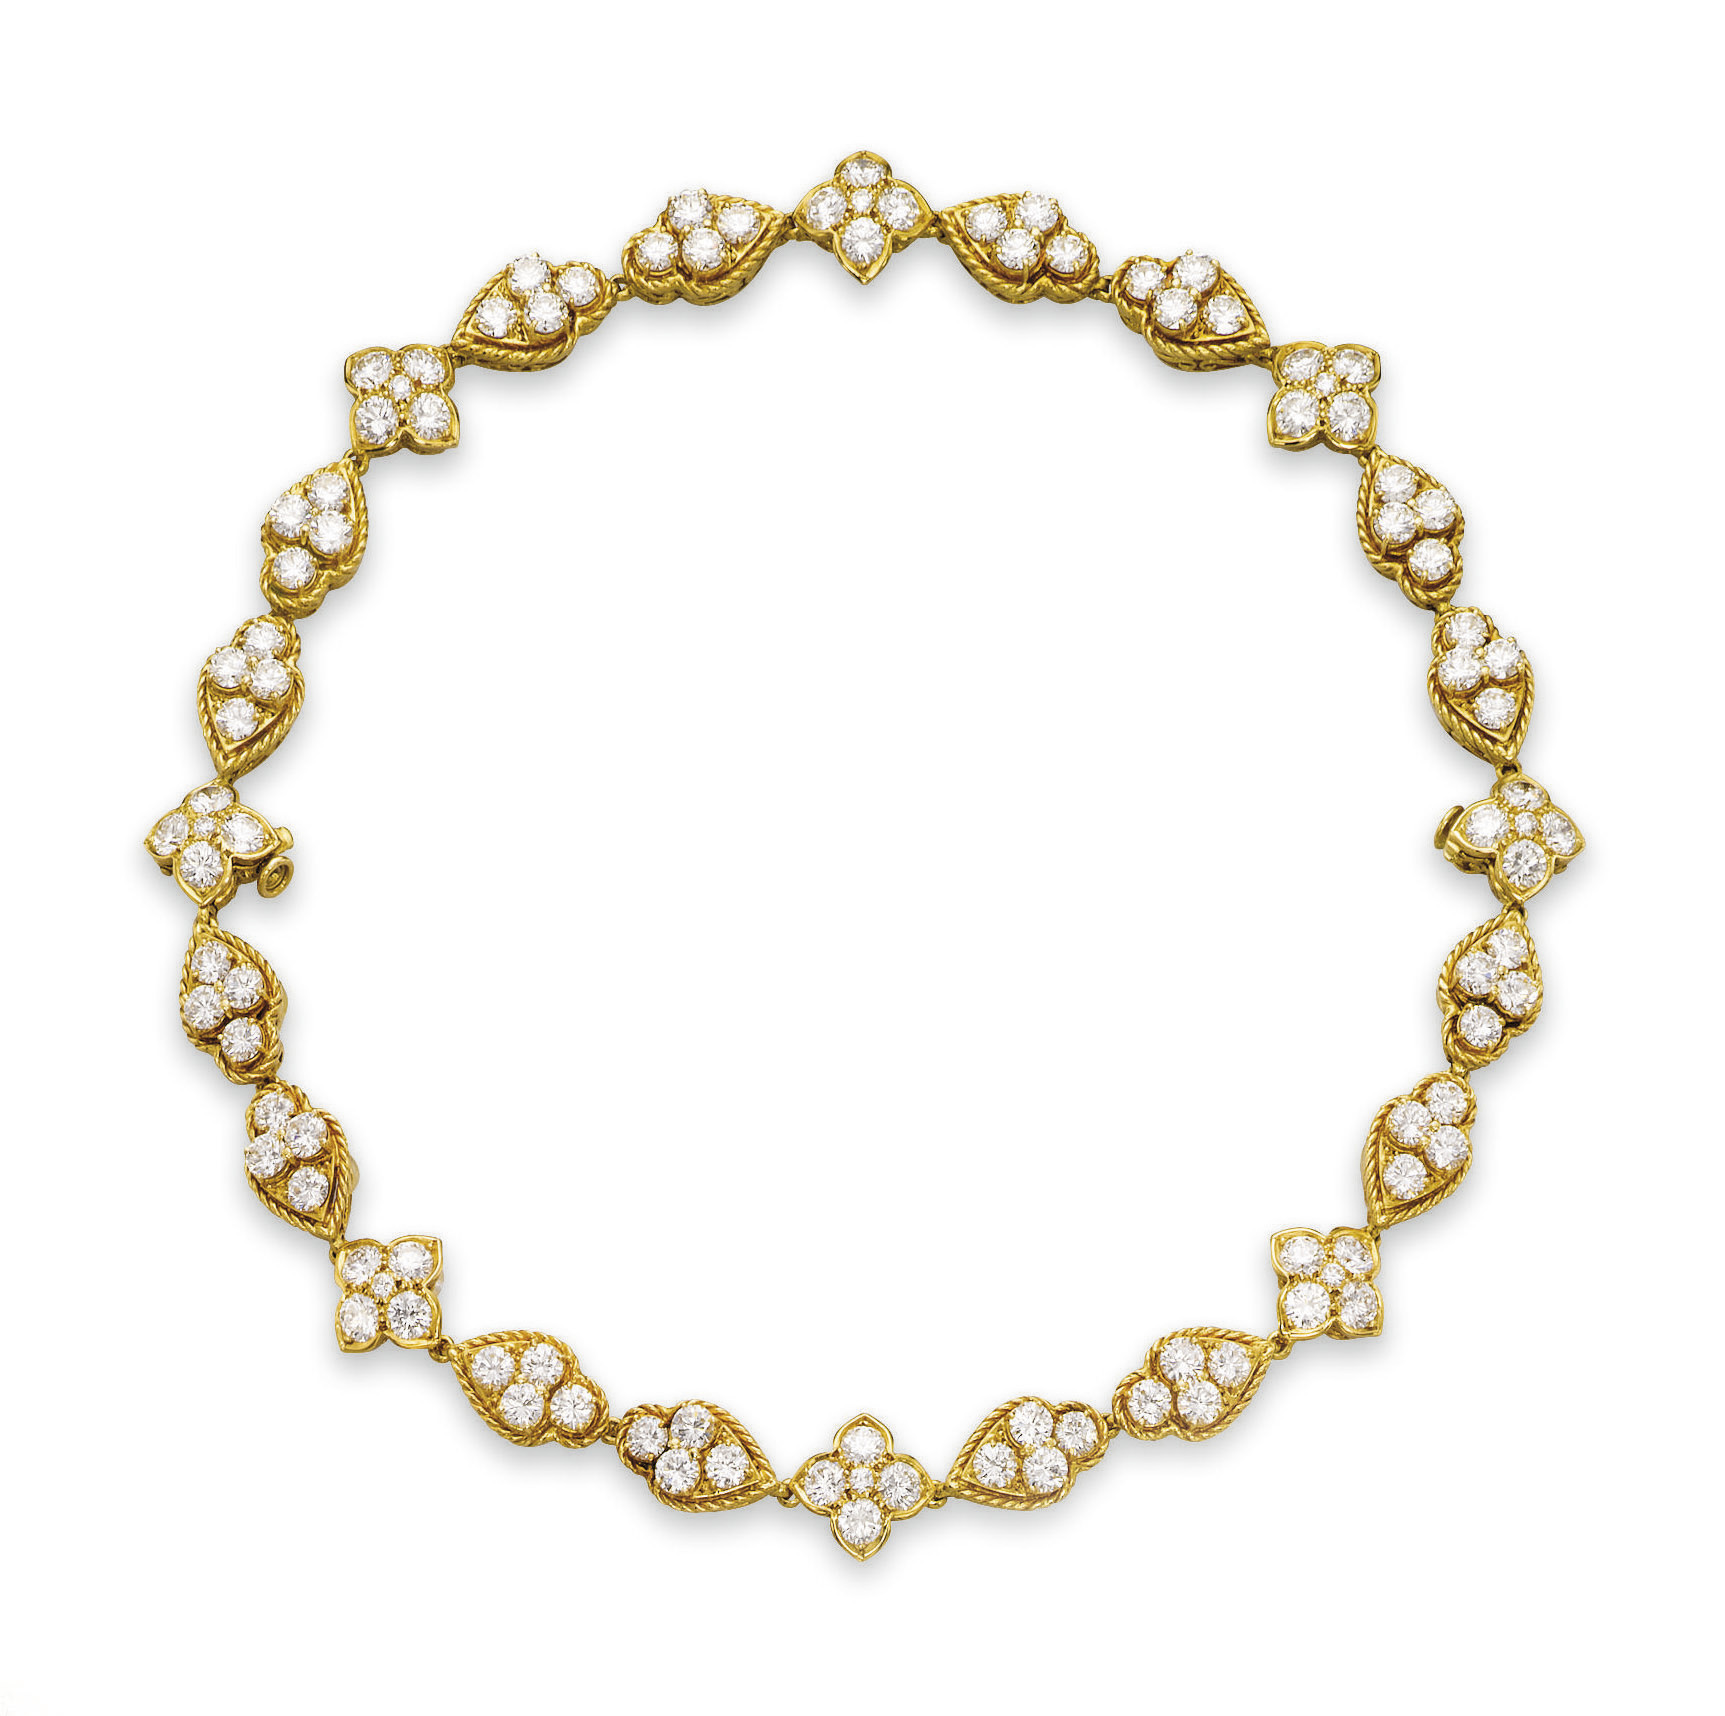 A GOLD AND DIAMOND NECKLACE  P